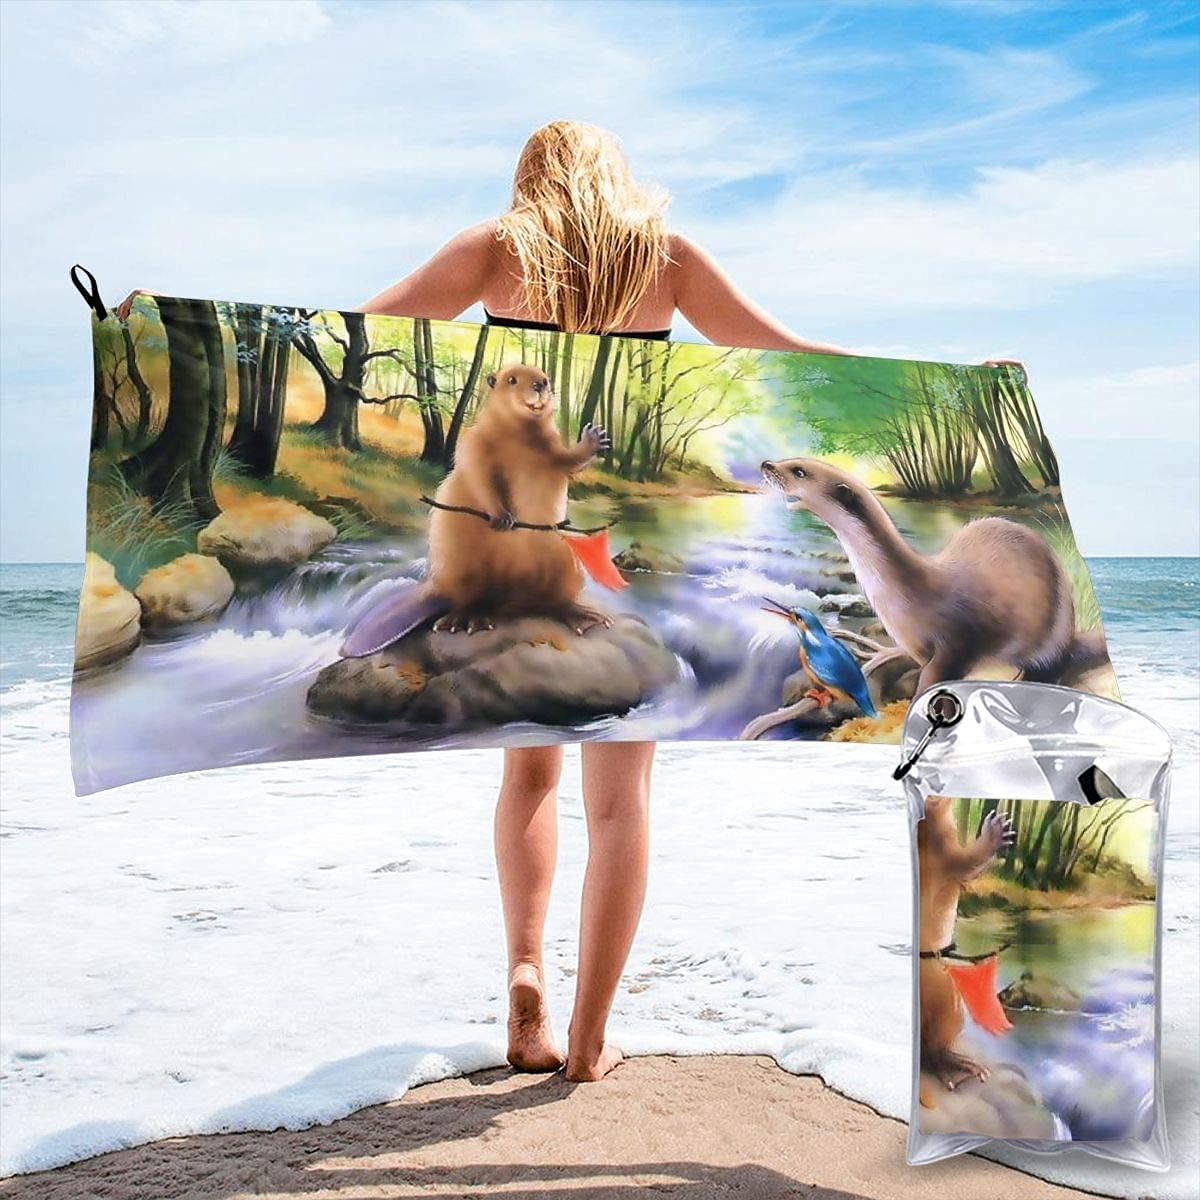 Bison Buffalo Microfiber Beach High order Towel Drying Quick Absorbe New Free Shipping Super